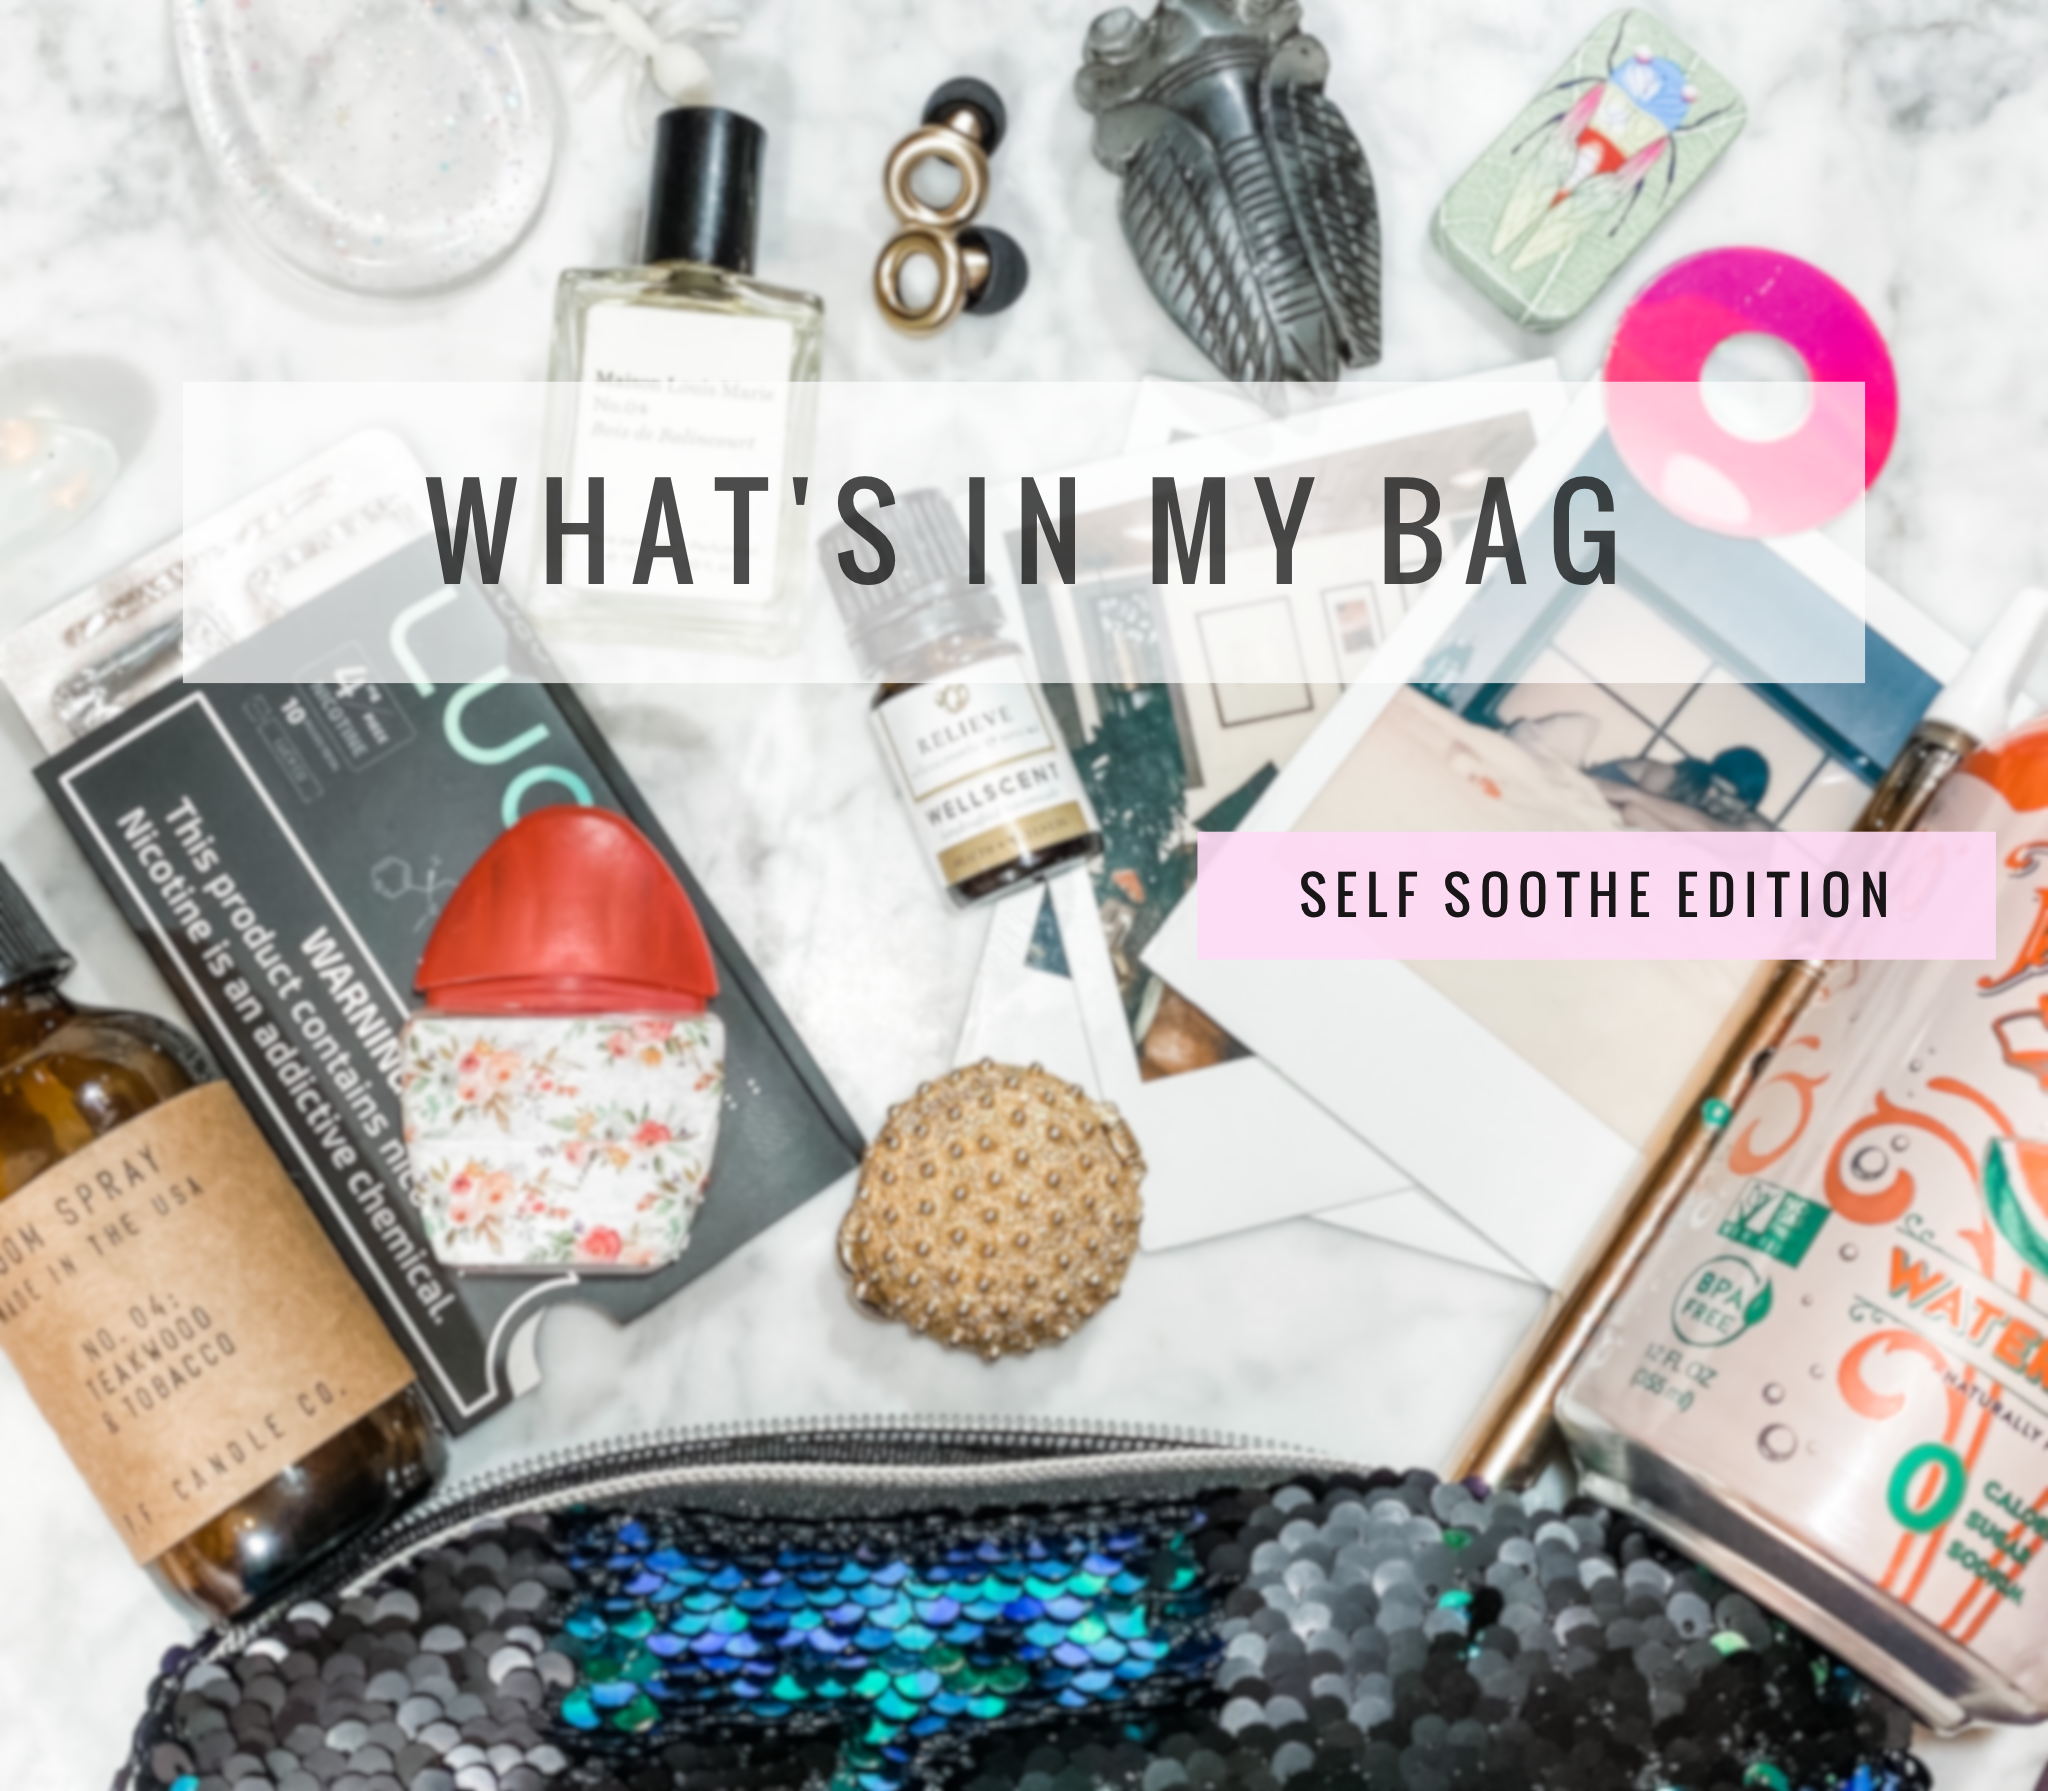 "items splayed out of a bag on marble background with text ""whats in my bag self soothe edition"""